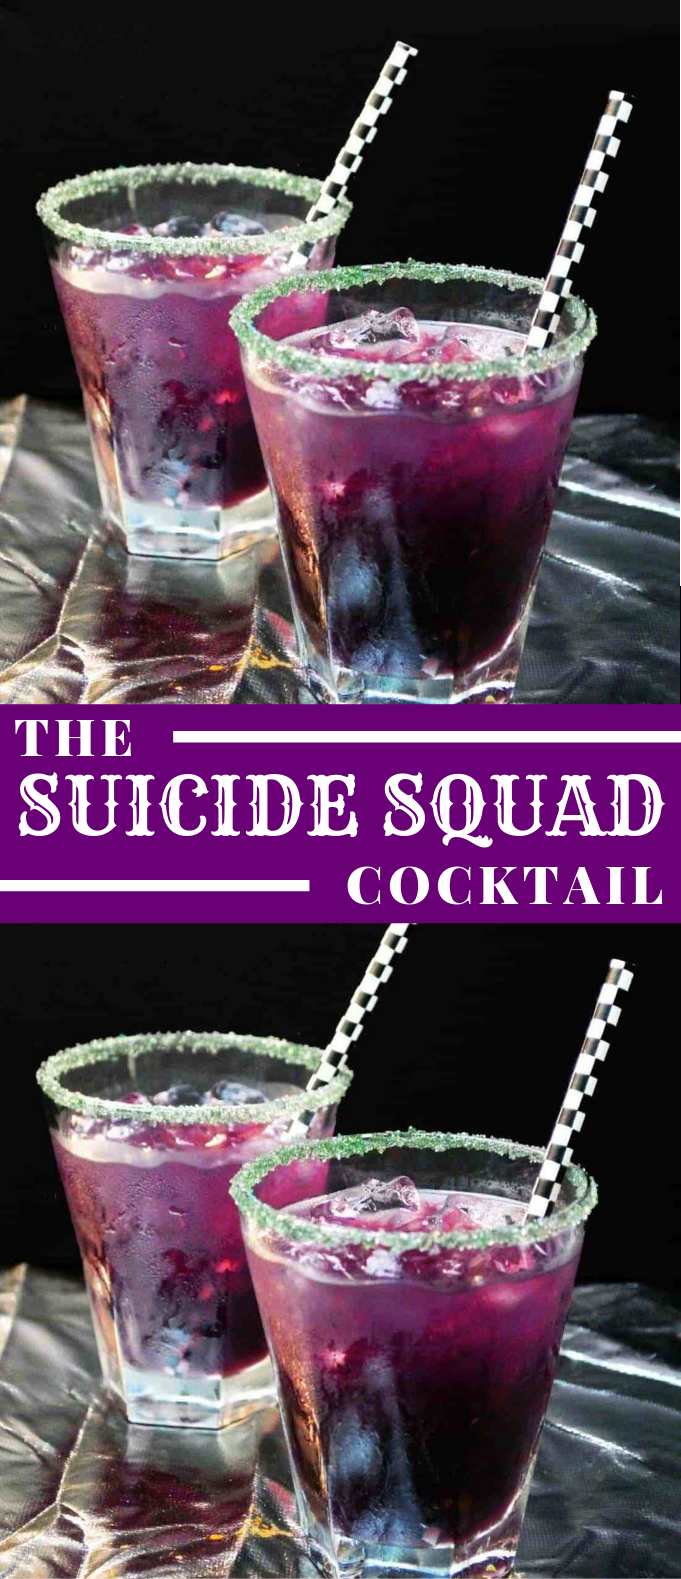 COCKTAIL – THE SUICIDE SQUAD #mixdrink #drinks